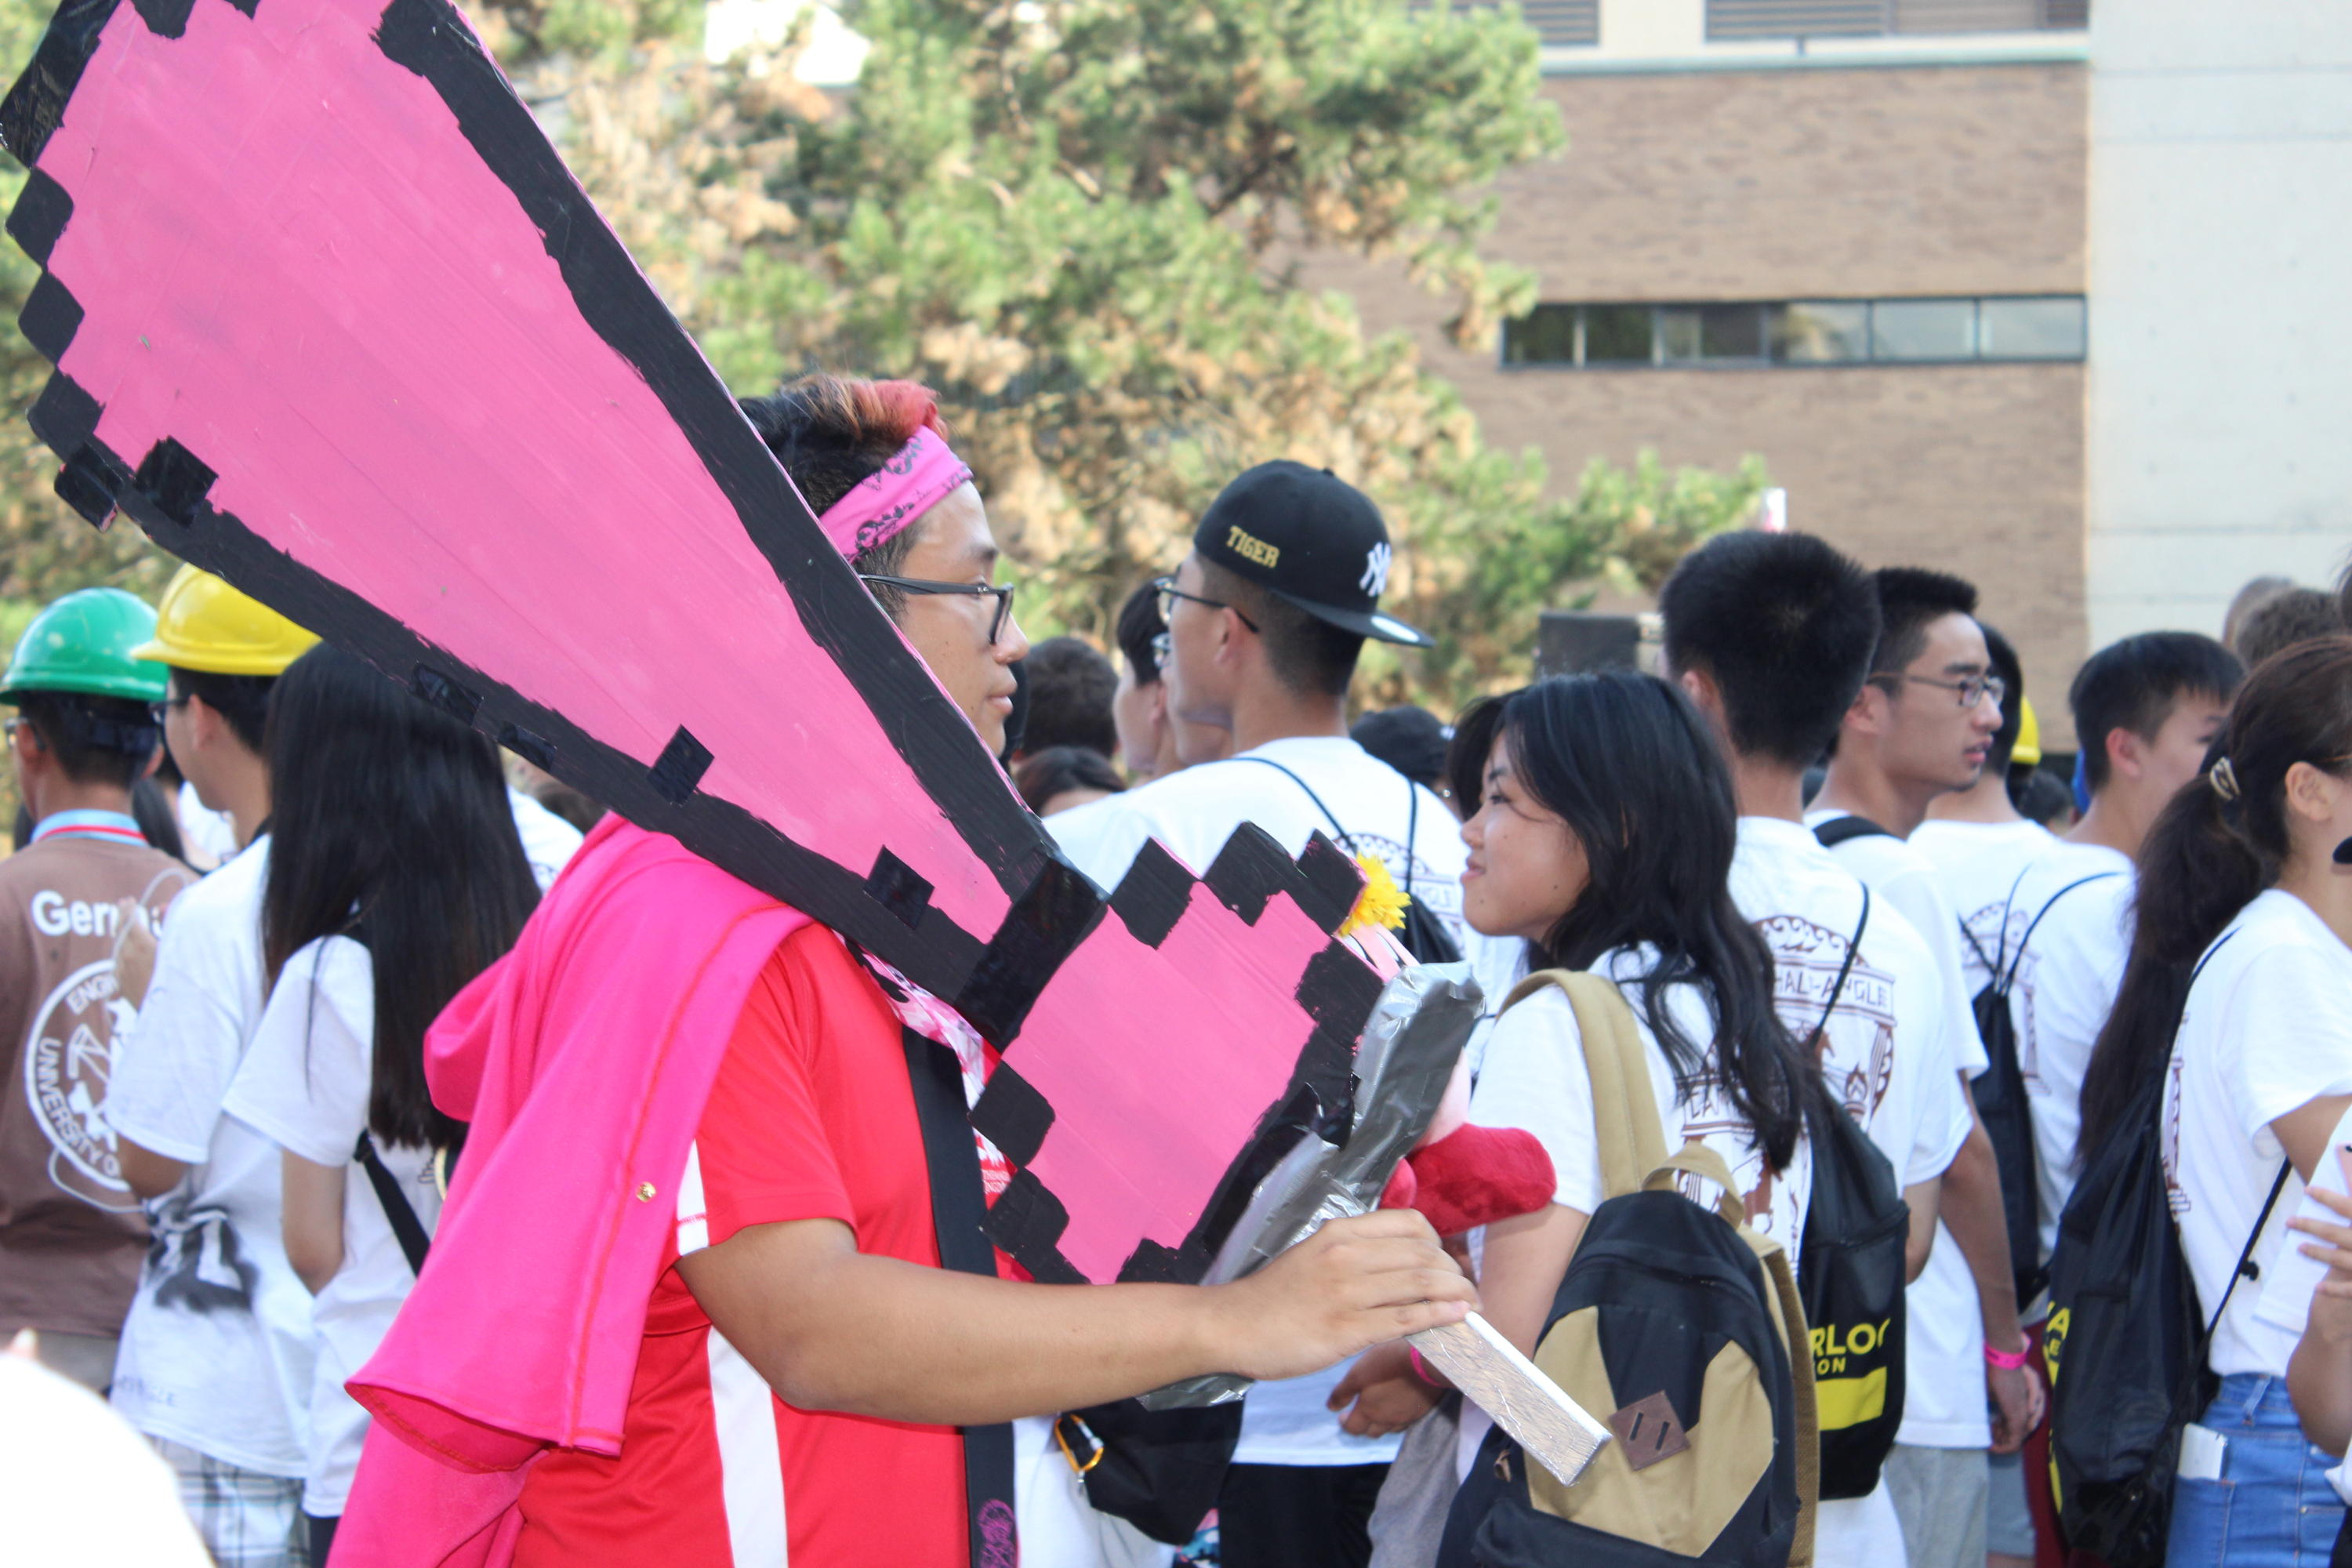 Orientation leader carrying large pink tie sign